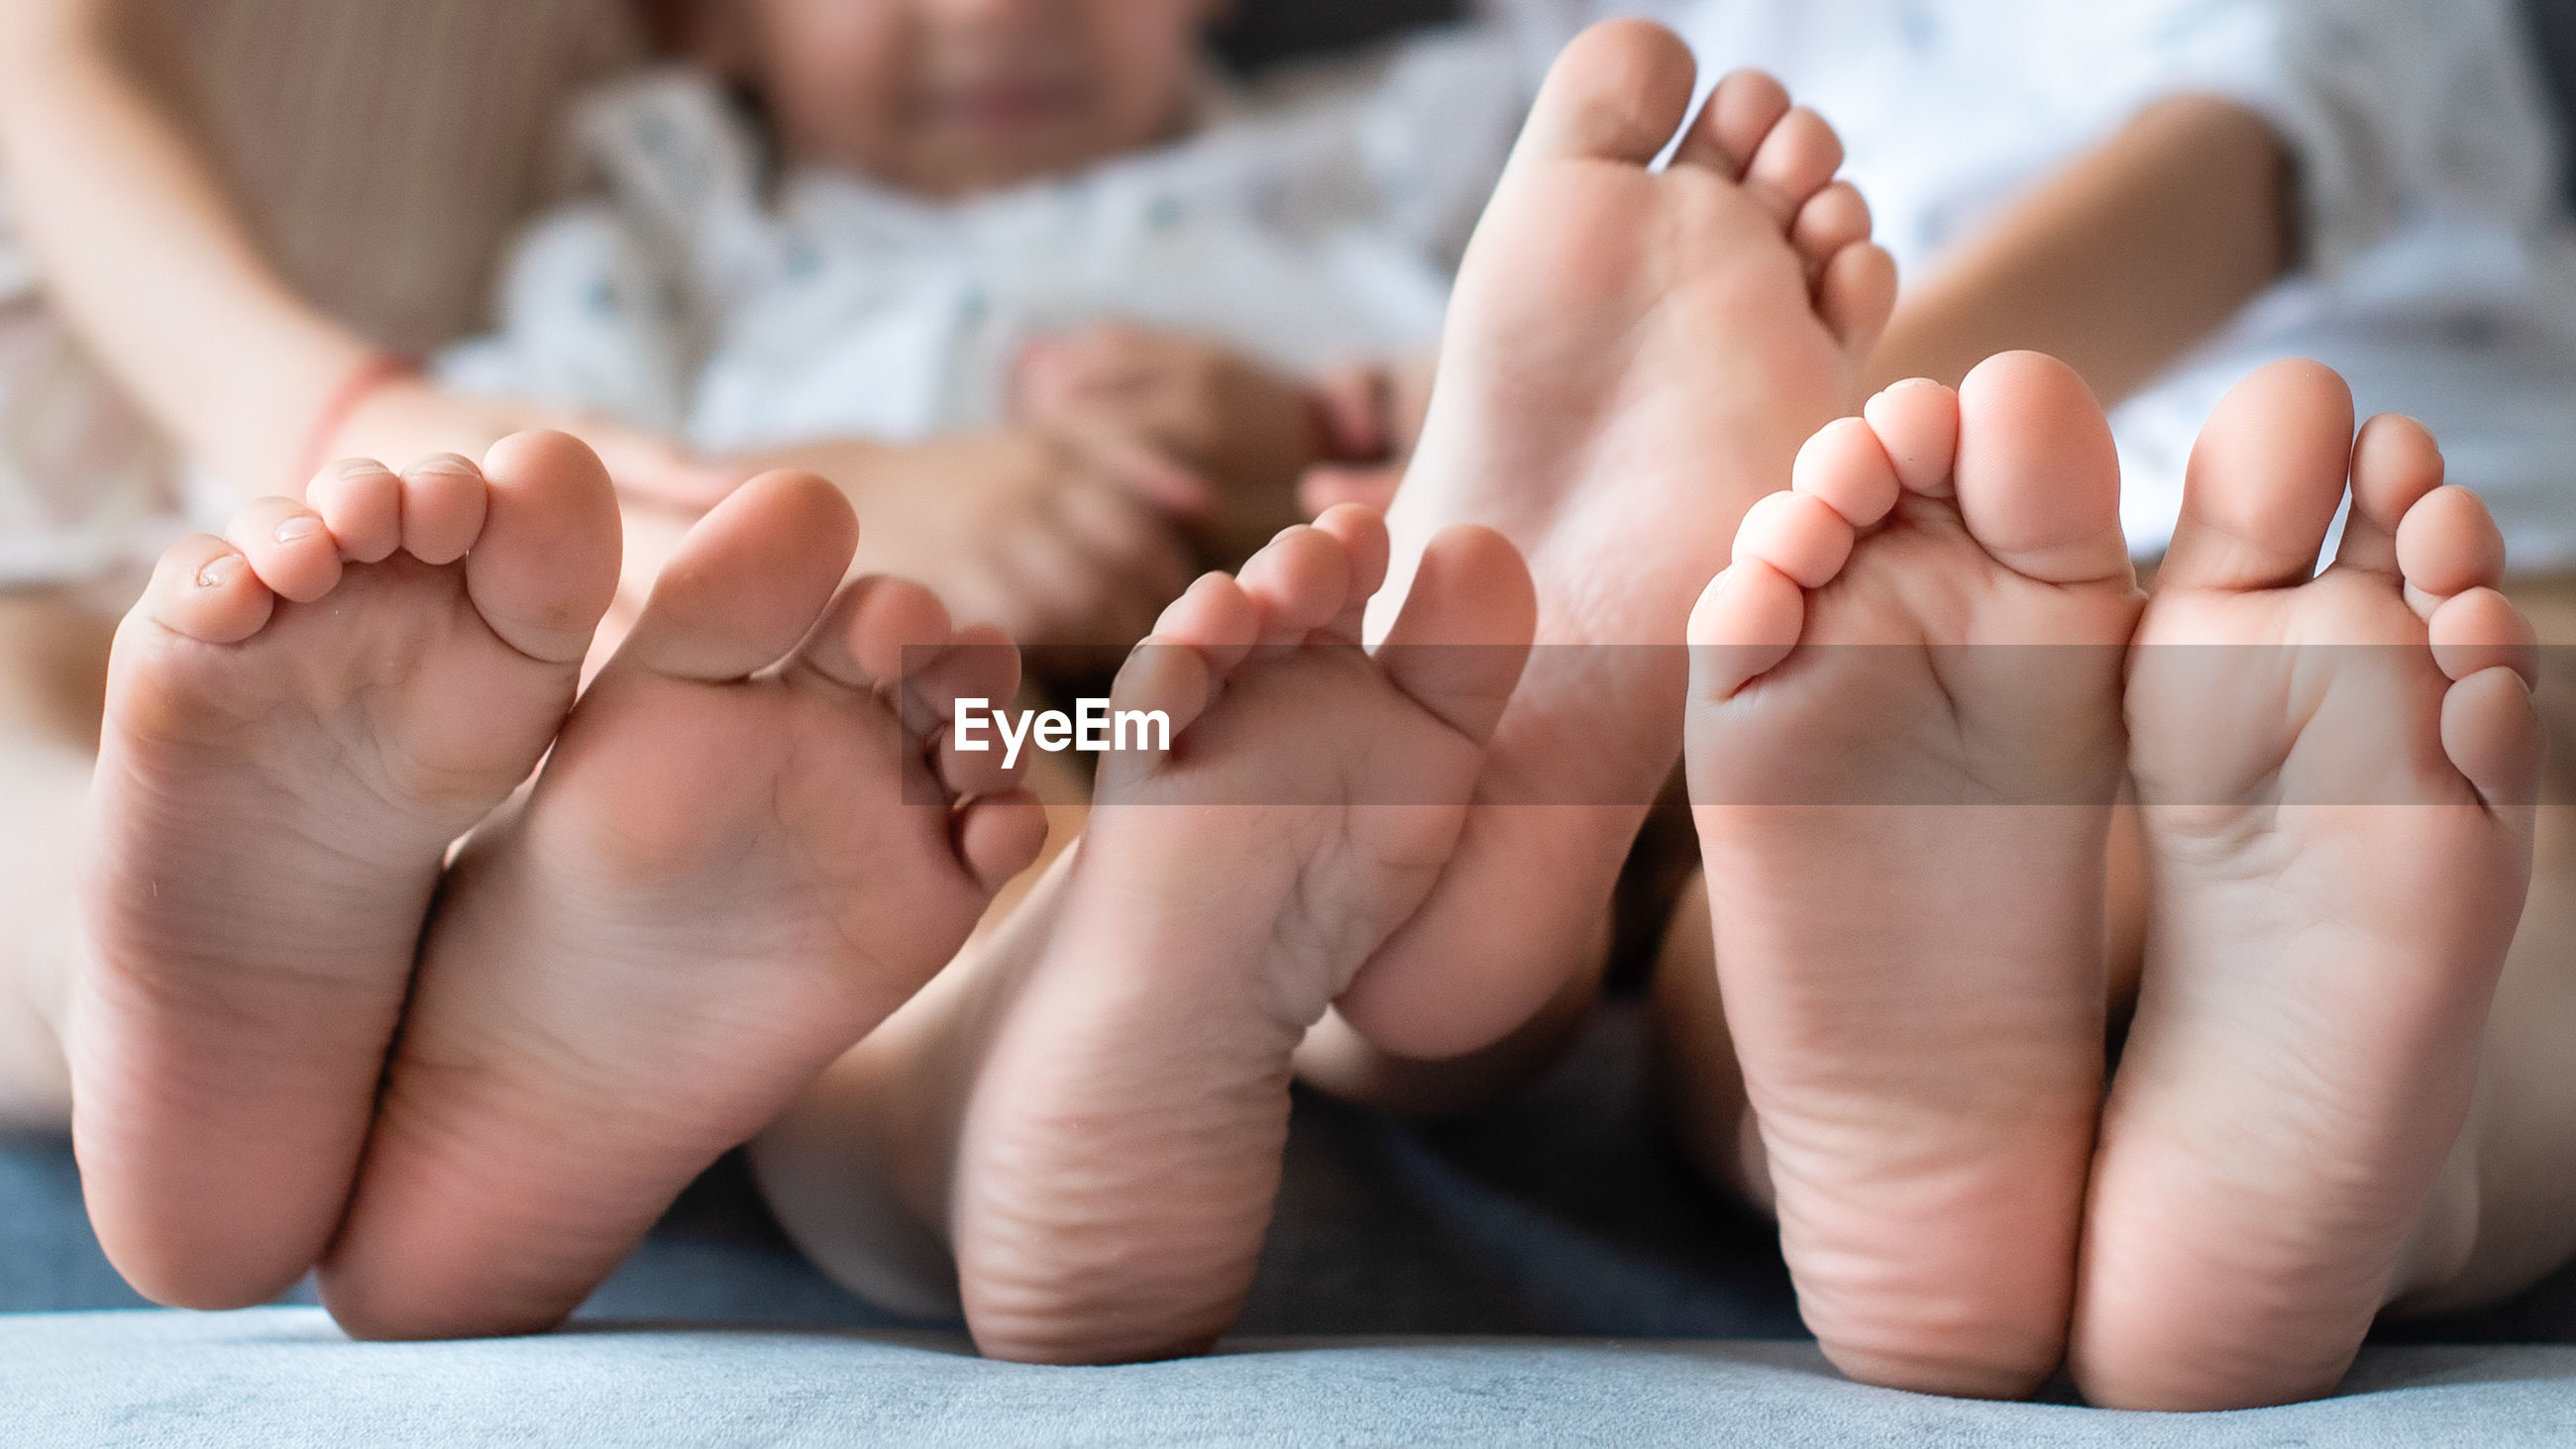 Close-up of baby feet